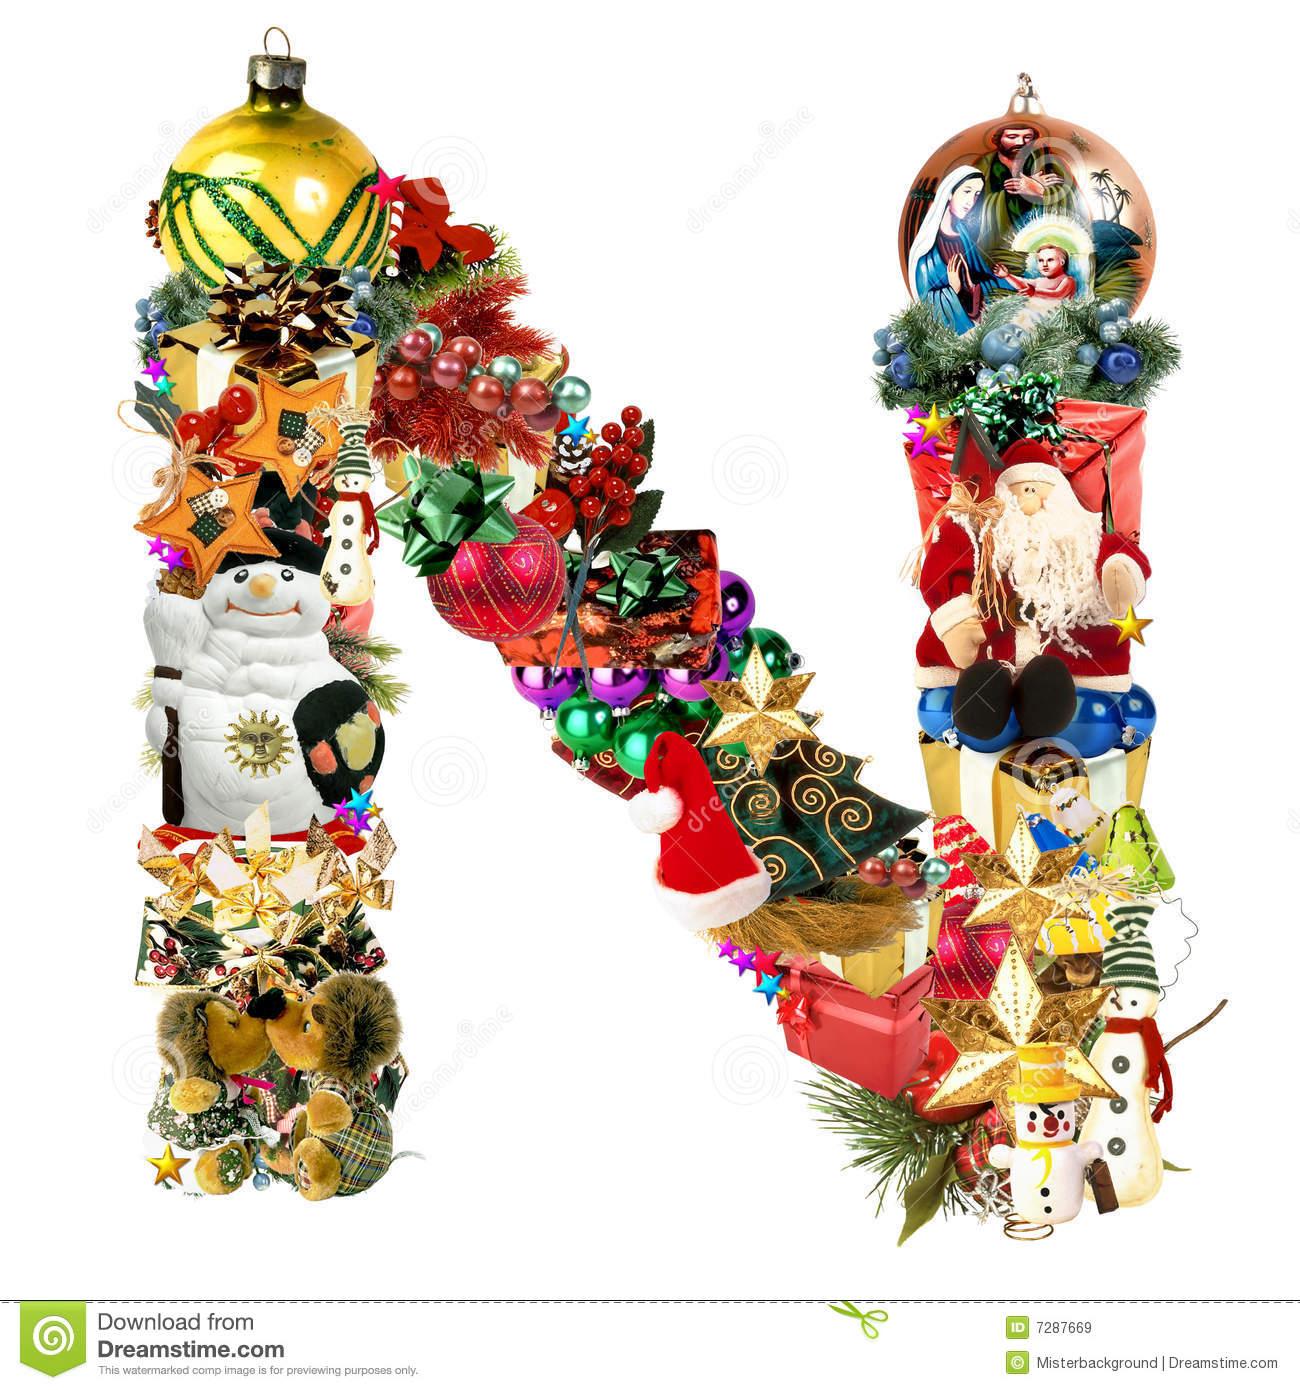 Sample Christmas Tree Decorating Ideas: Letter N, For Christmas Decoration Royalty Free Stock